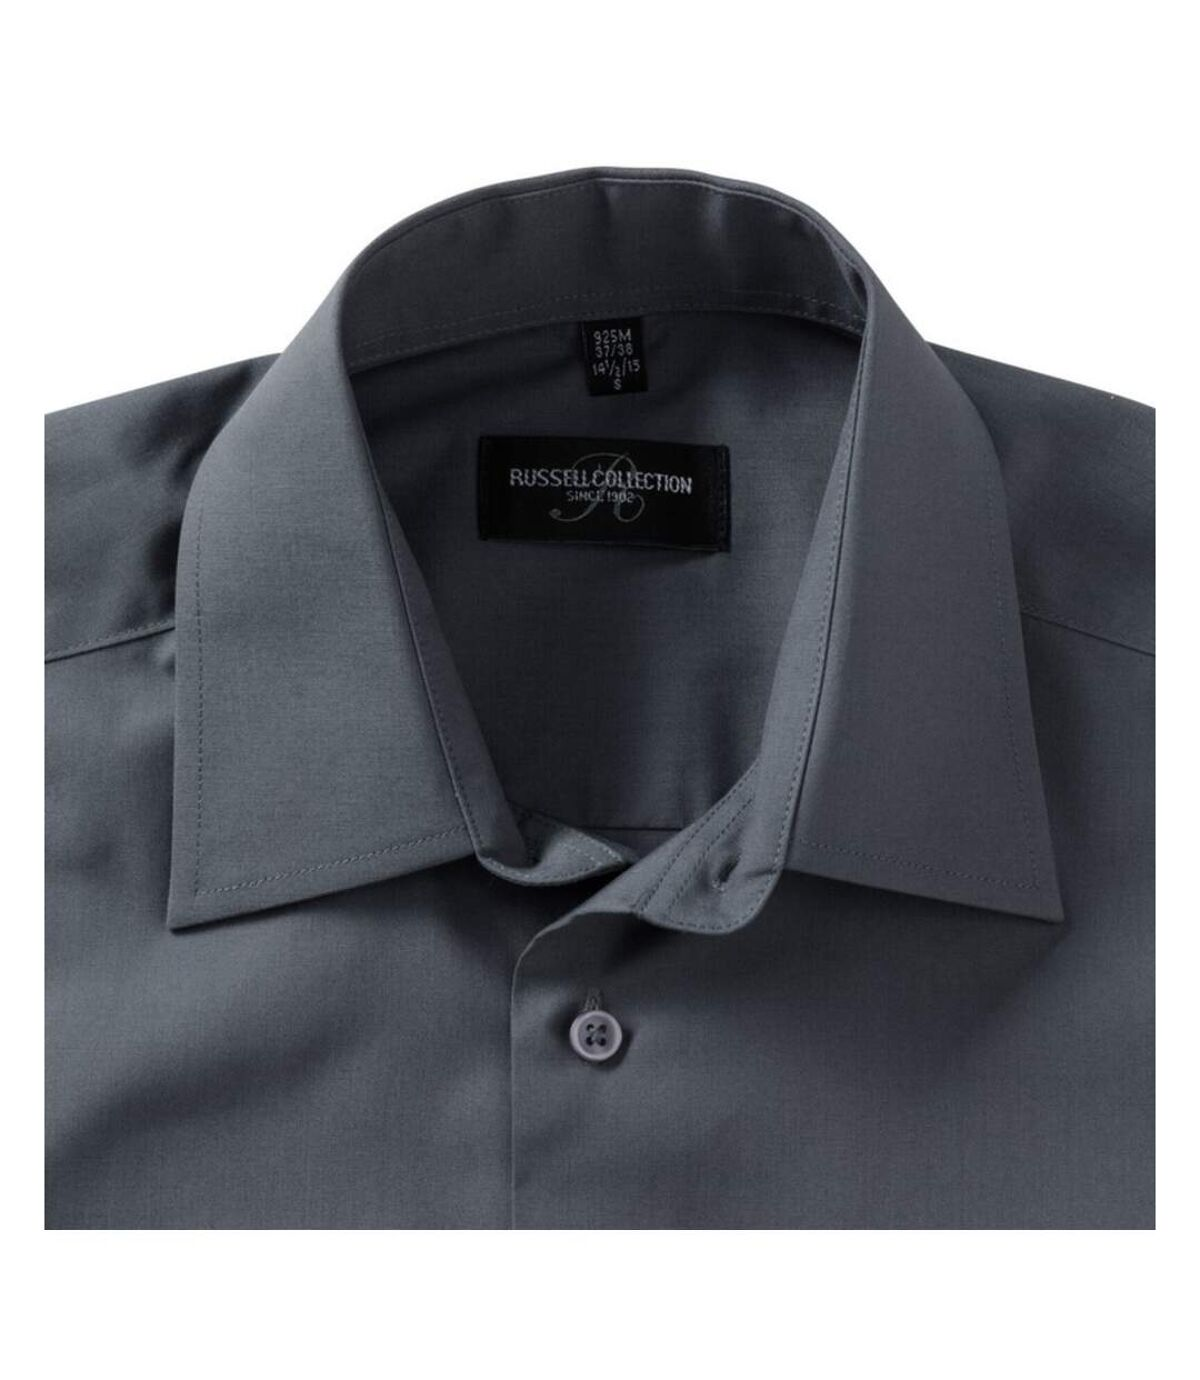 Russell Collection Mens Short Sleeve Poly-Cotton Easy Care Poplin Shirt (Convoy Grey) - UTBC1029